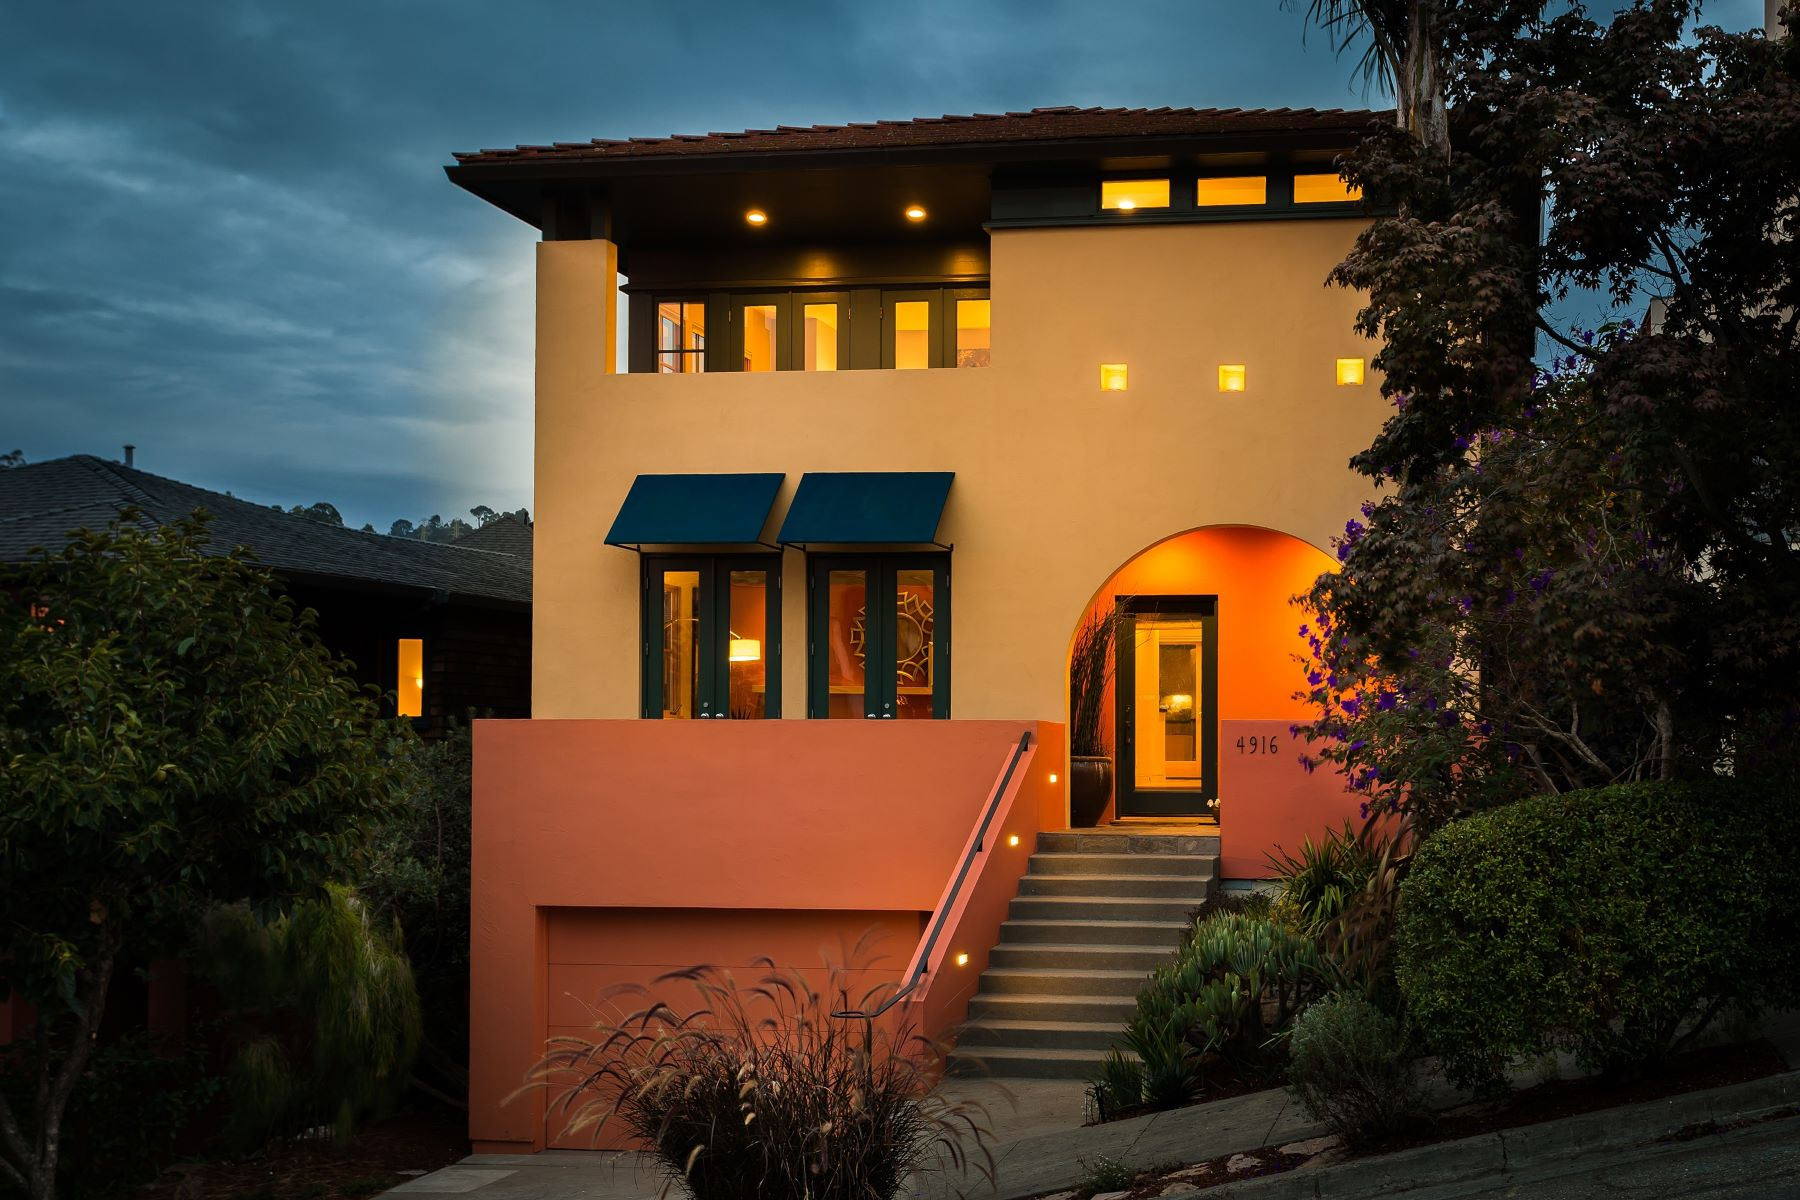 Single Family Home for Sale at Updated Contemporary & North Bay Views 4916 Cochrane Avenue Oakland, California 94618 United States